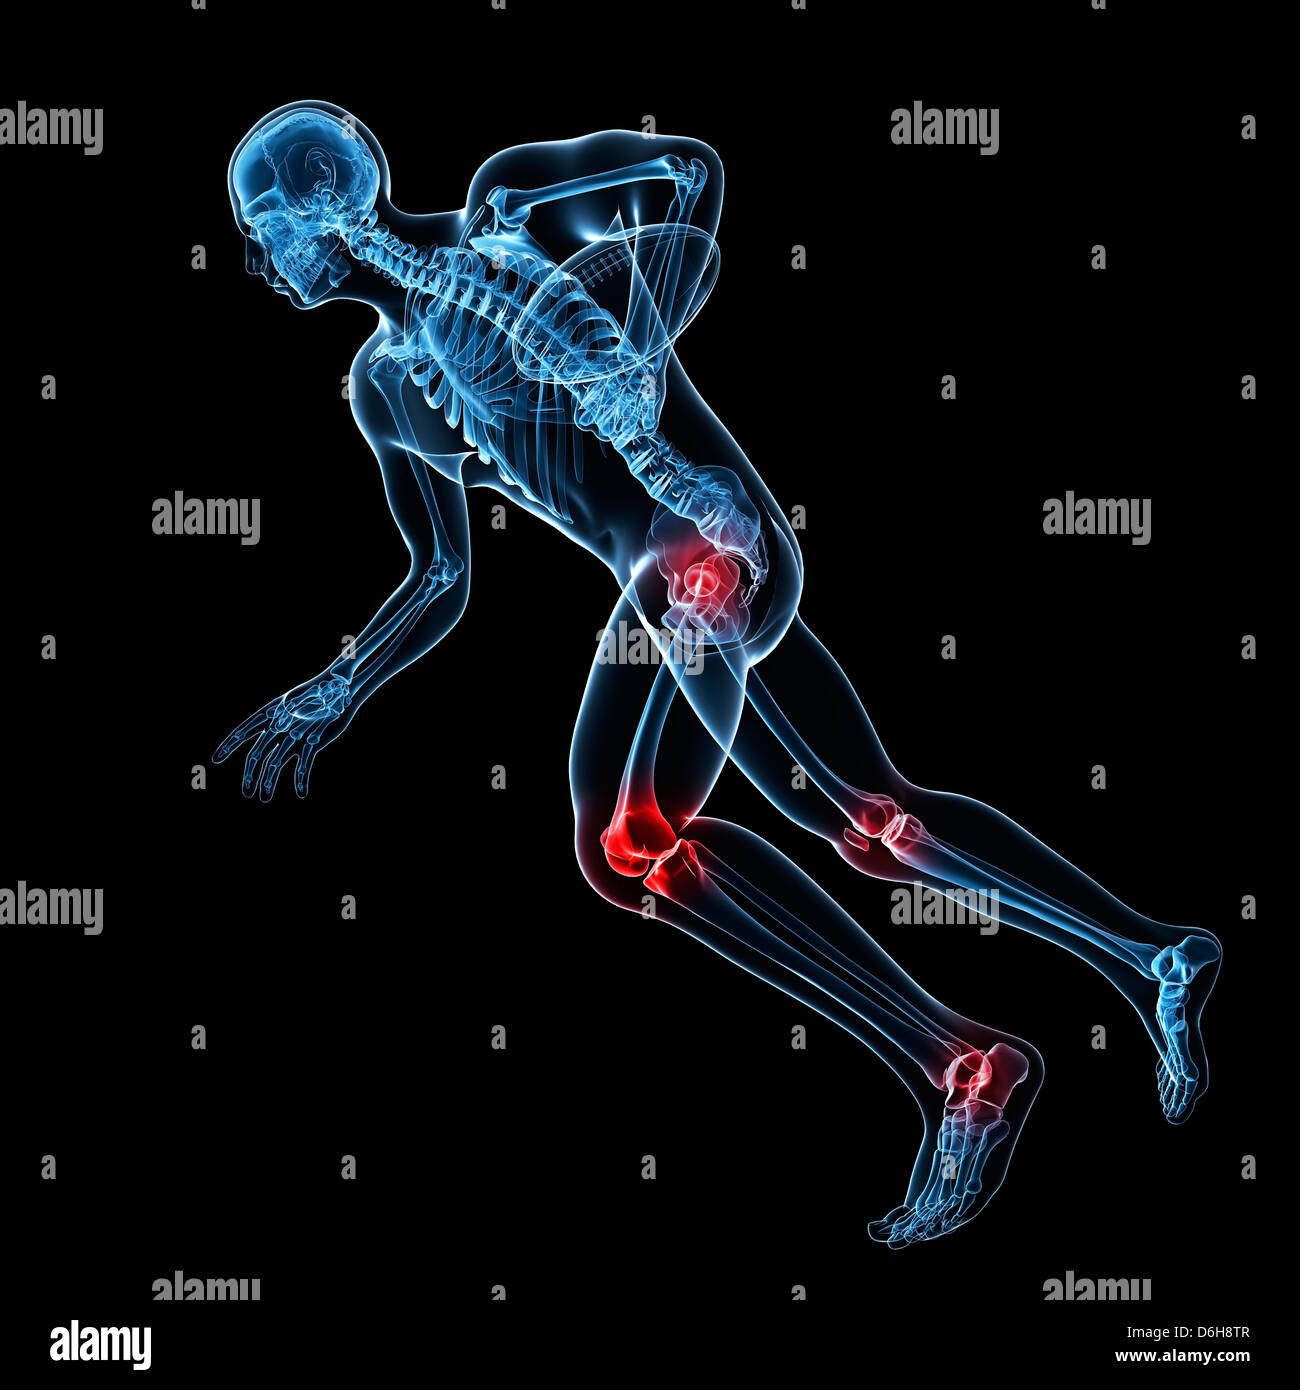 Sports injuries, conceptual artwork - Stock Image